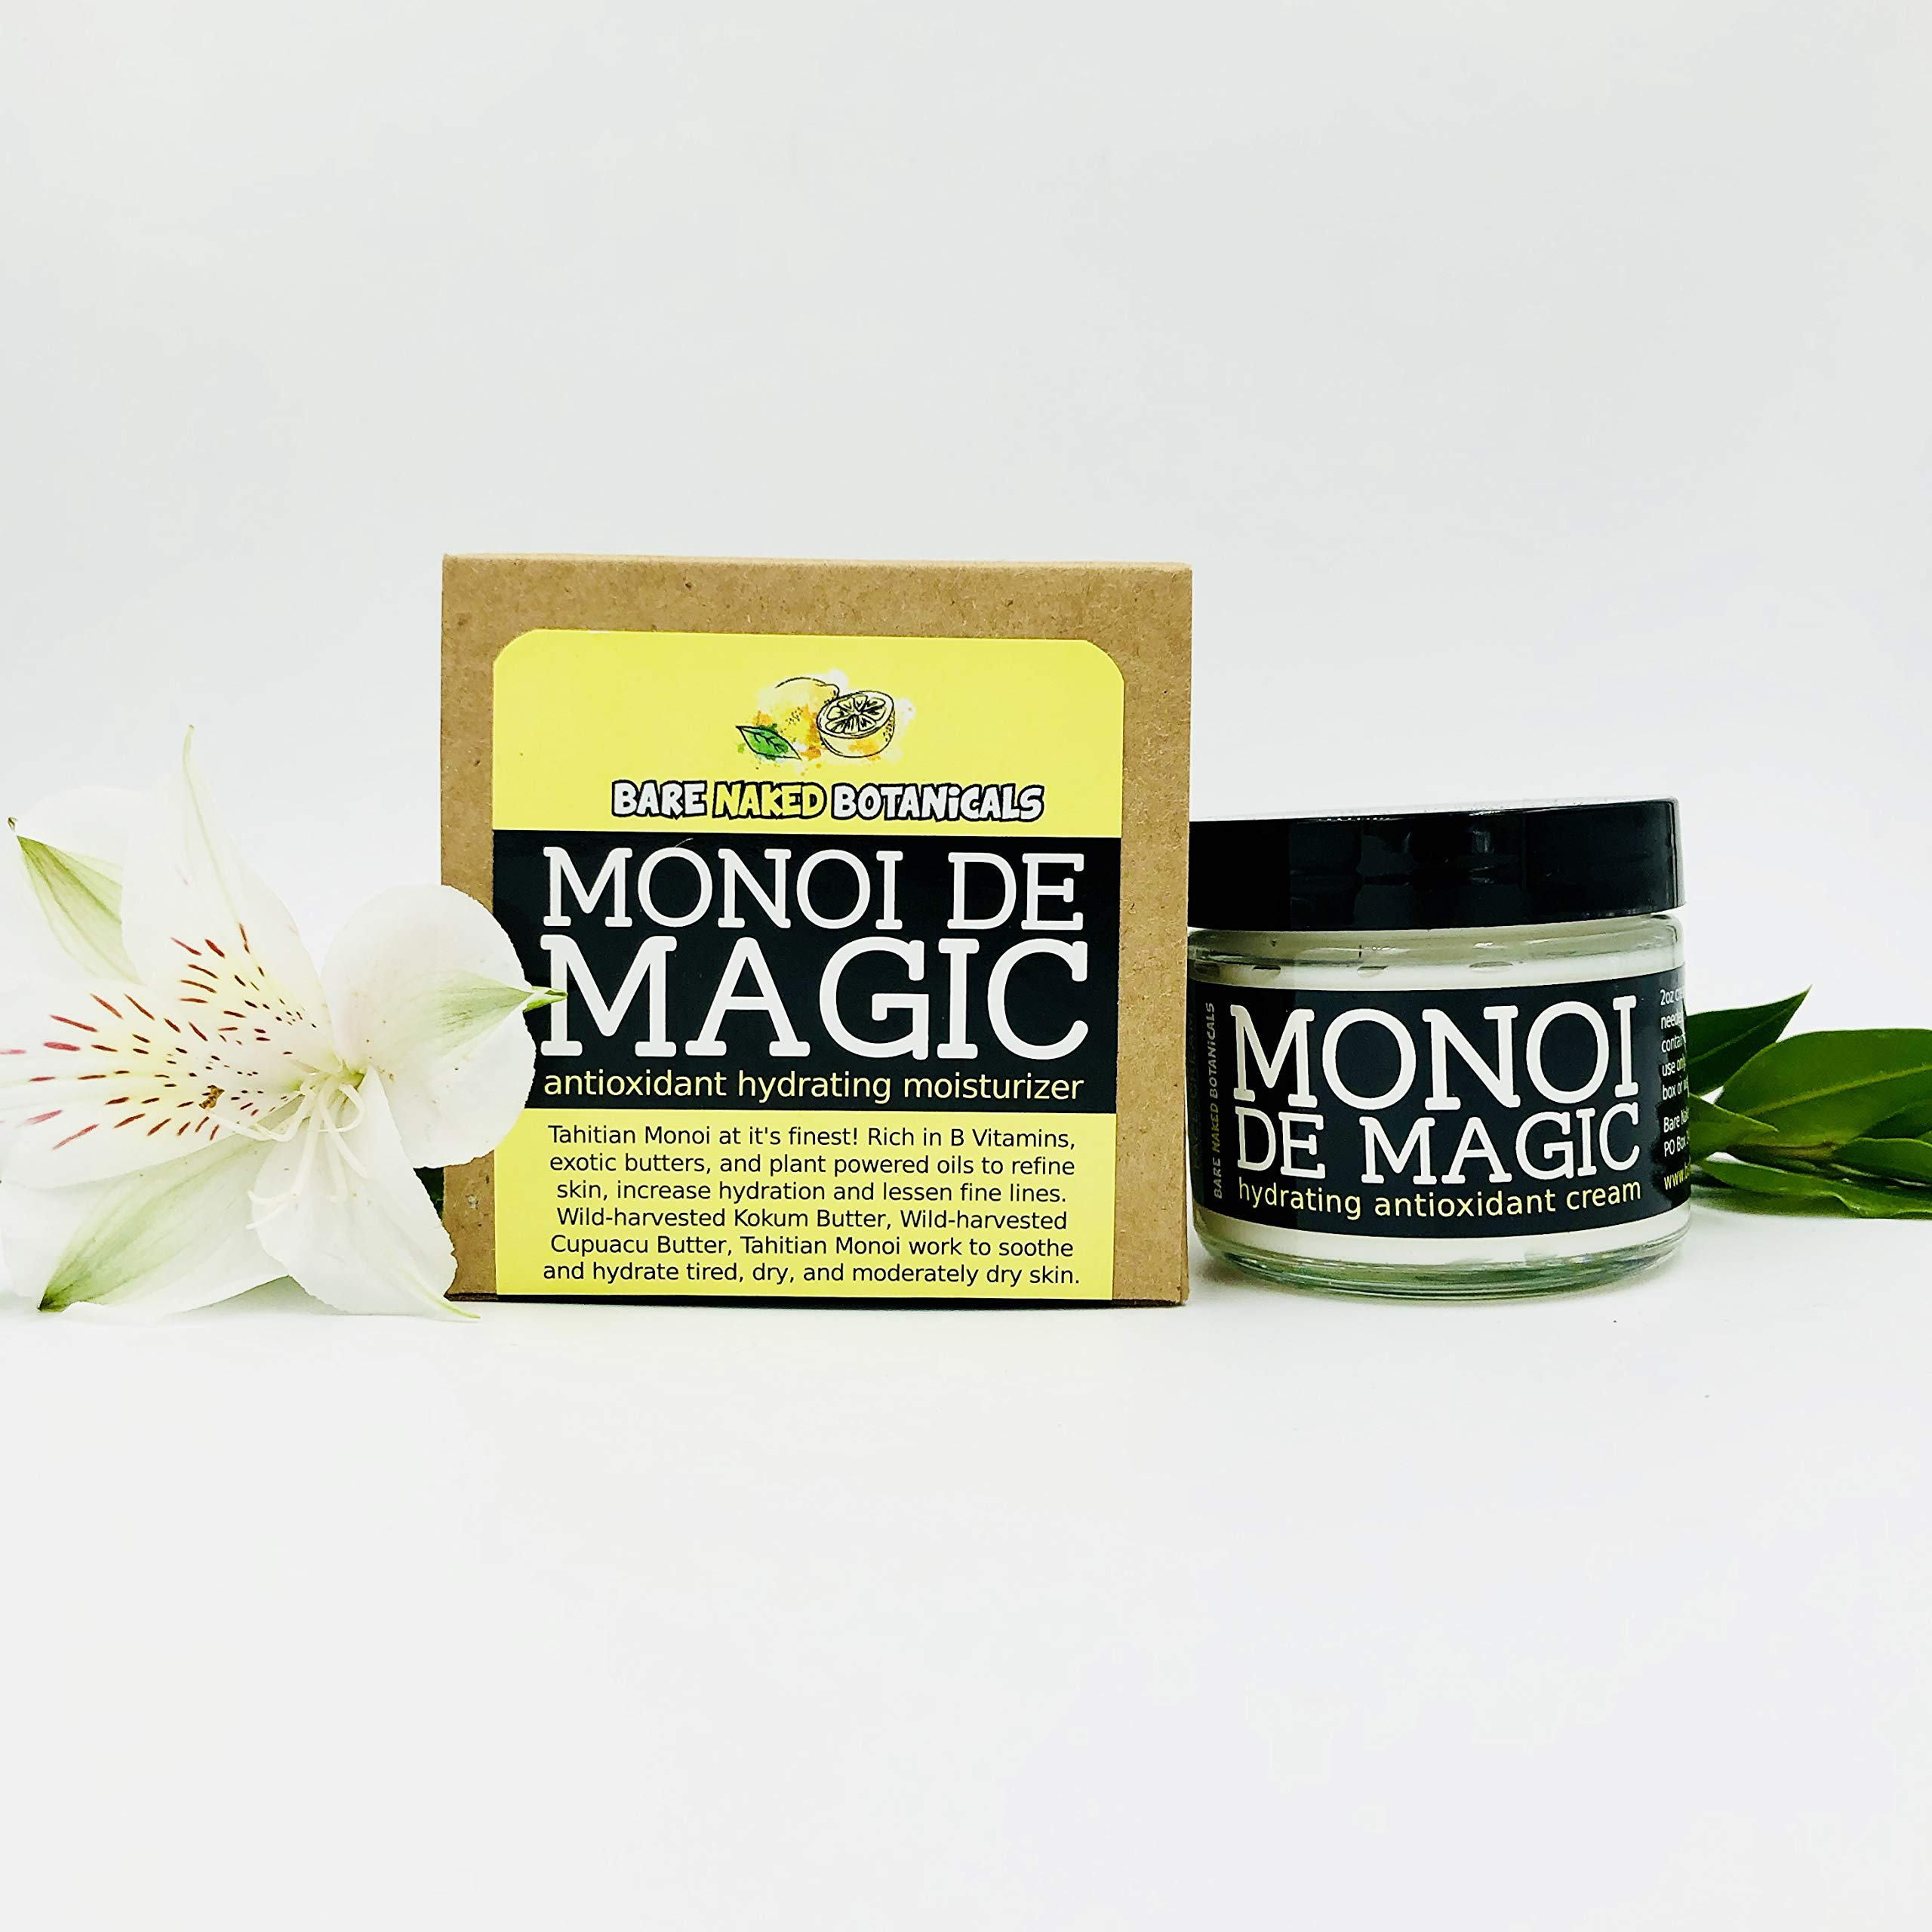 Monoi De Magic Vegan Hydrating Facial Cream by Bare Naked Botanicals